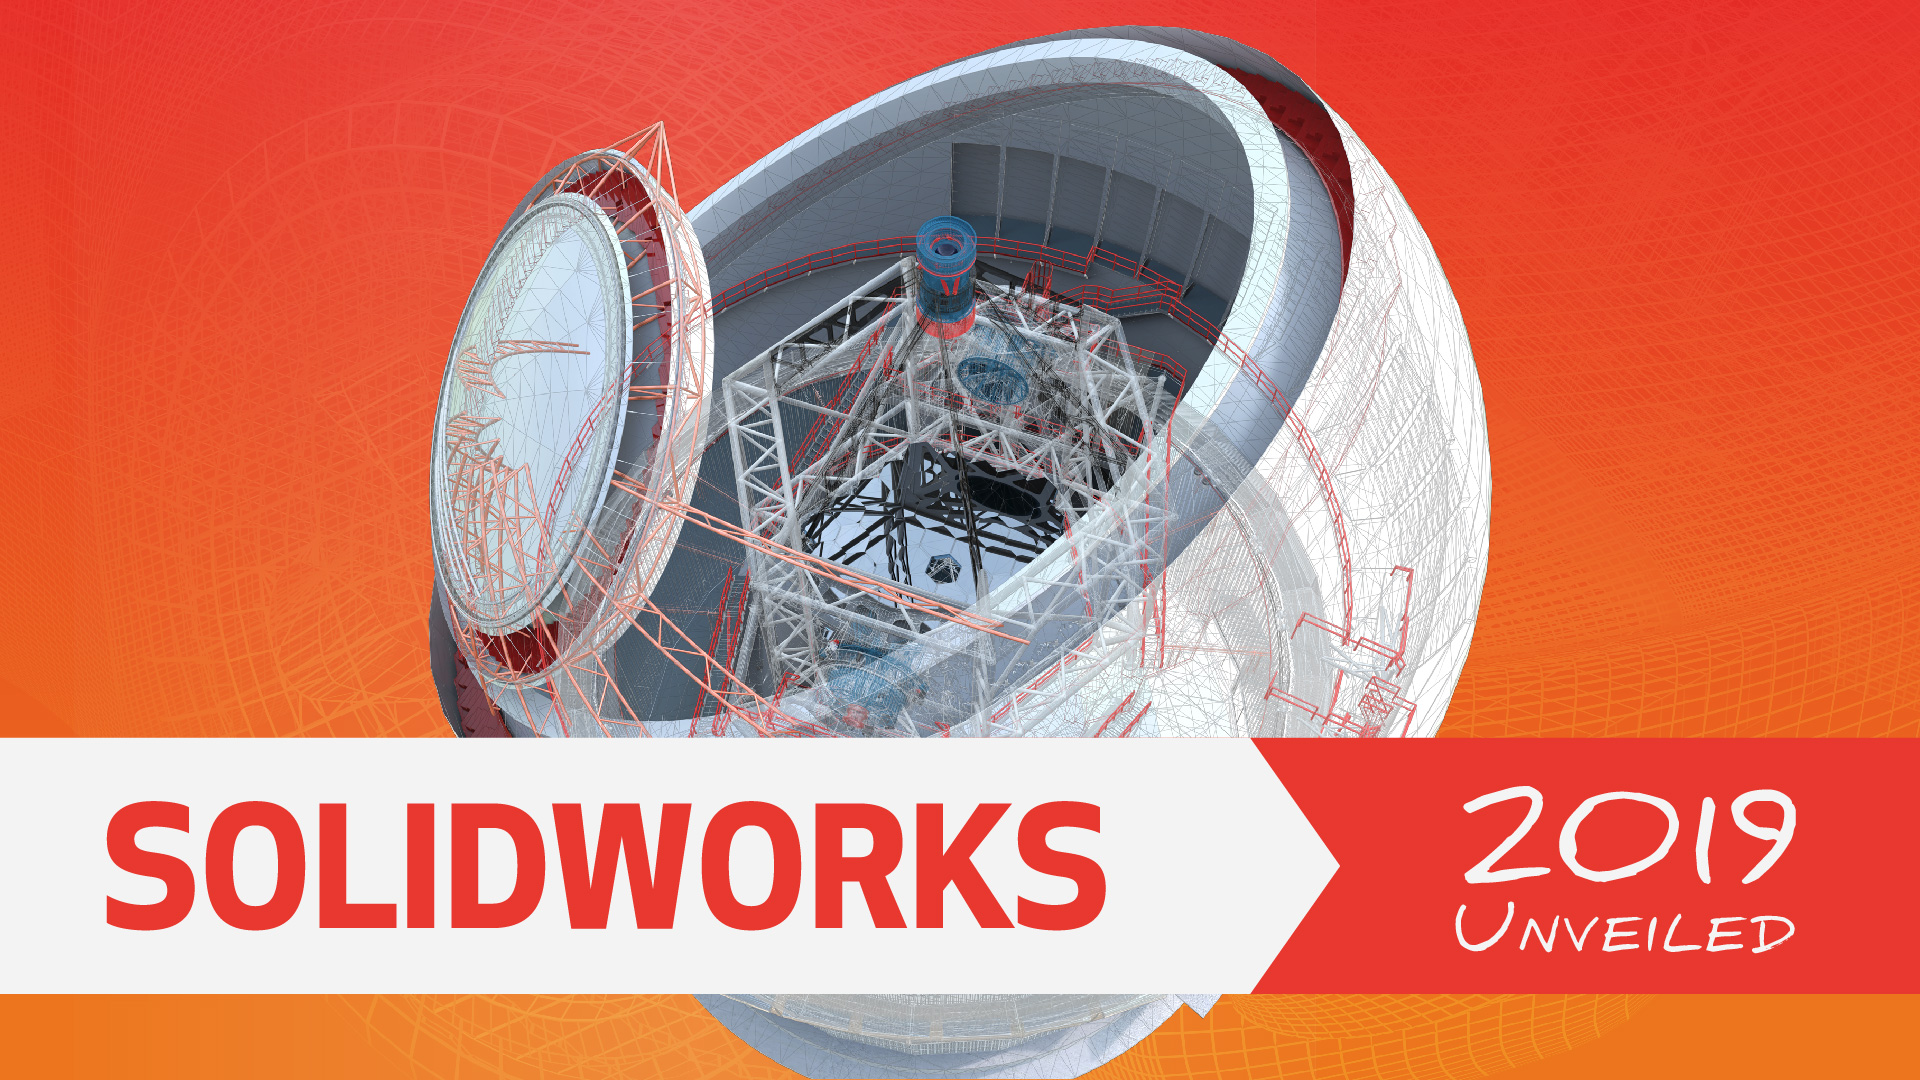 SOLIDWORKS 2019 is Here!